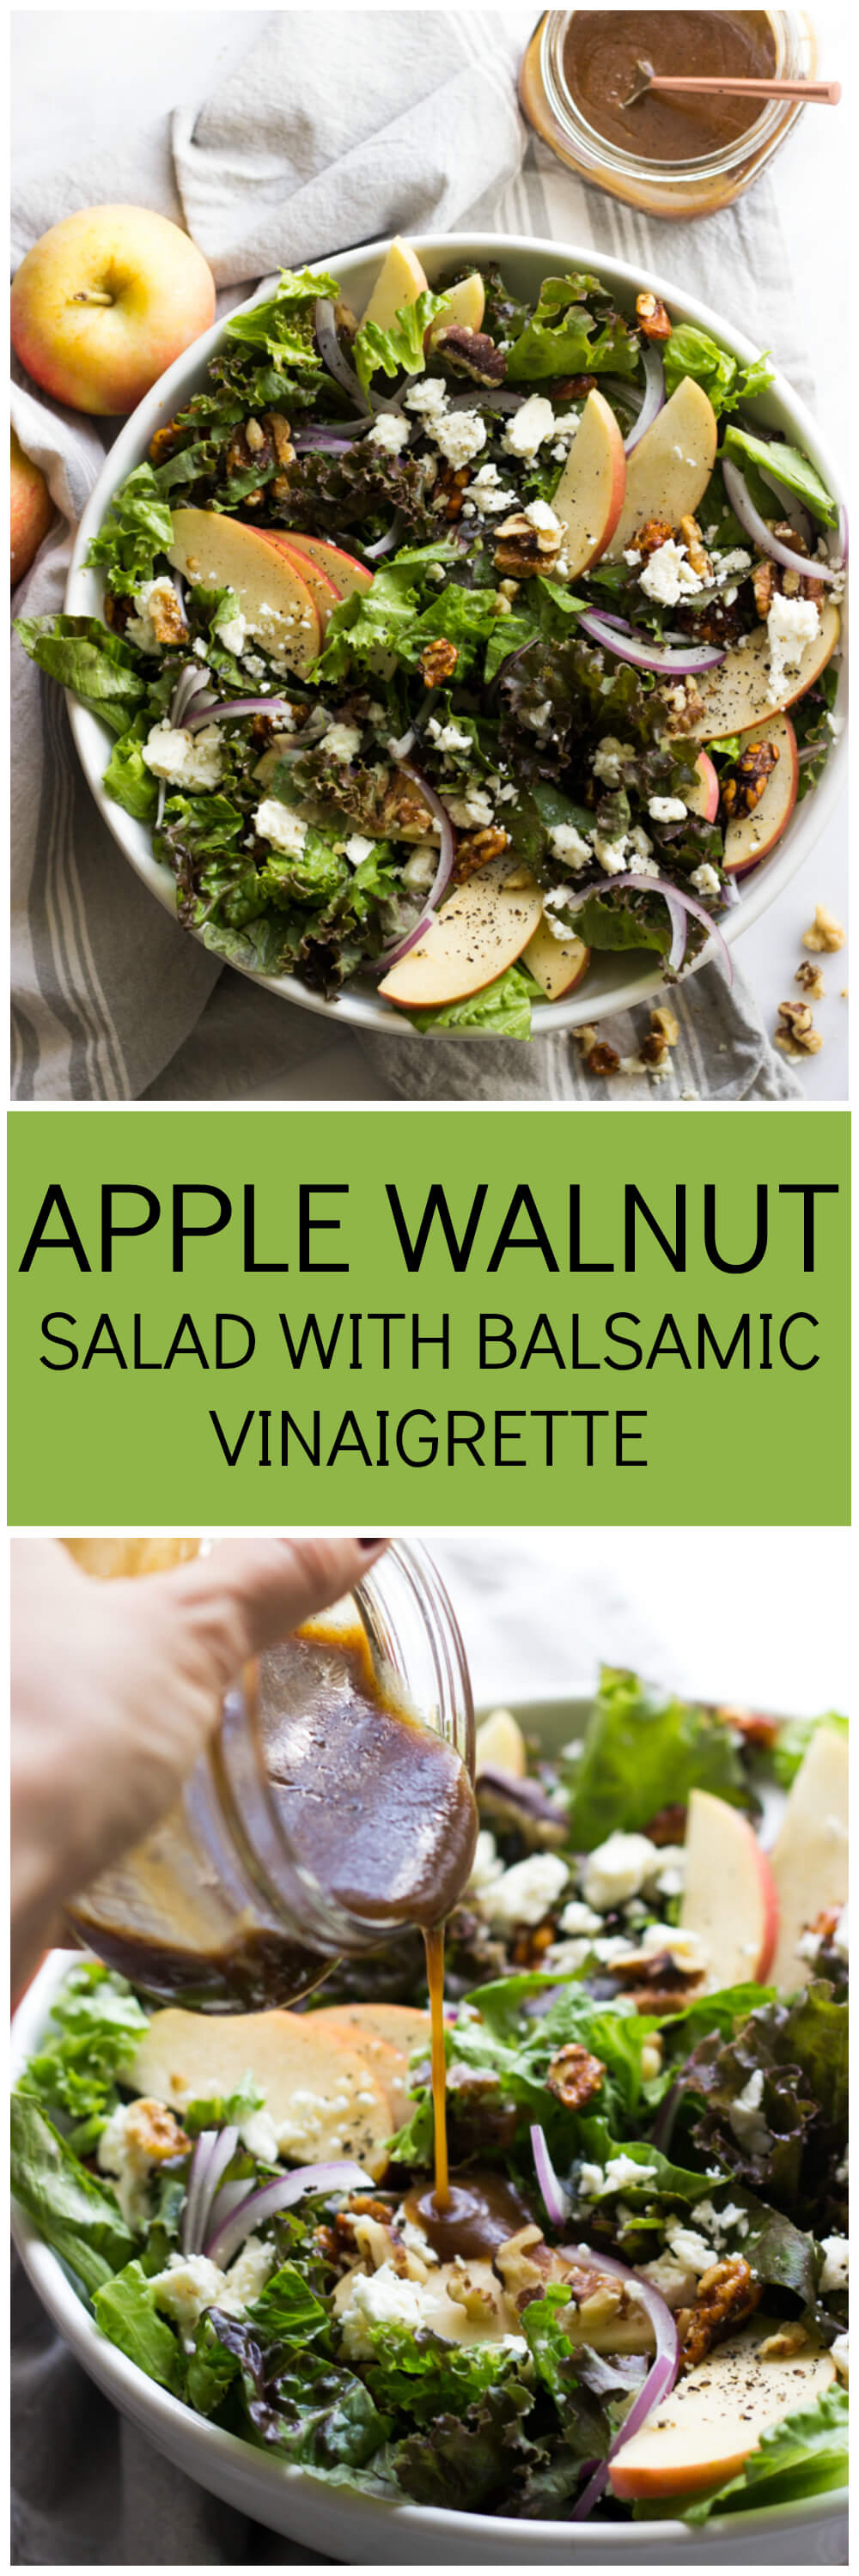 Apple Walnut Salad with Balsamic Vinaigrette - delicious autumn salad with pantry ingredients | littlebroken.com @littlebroken